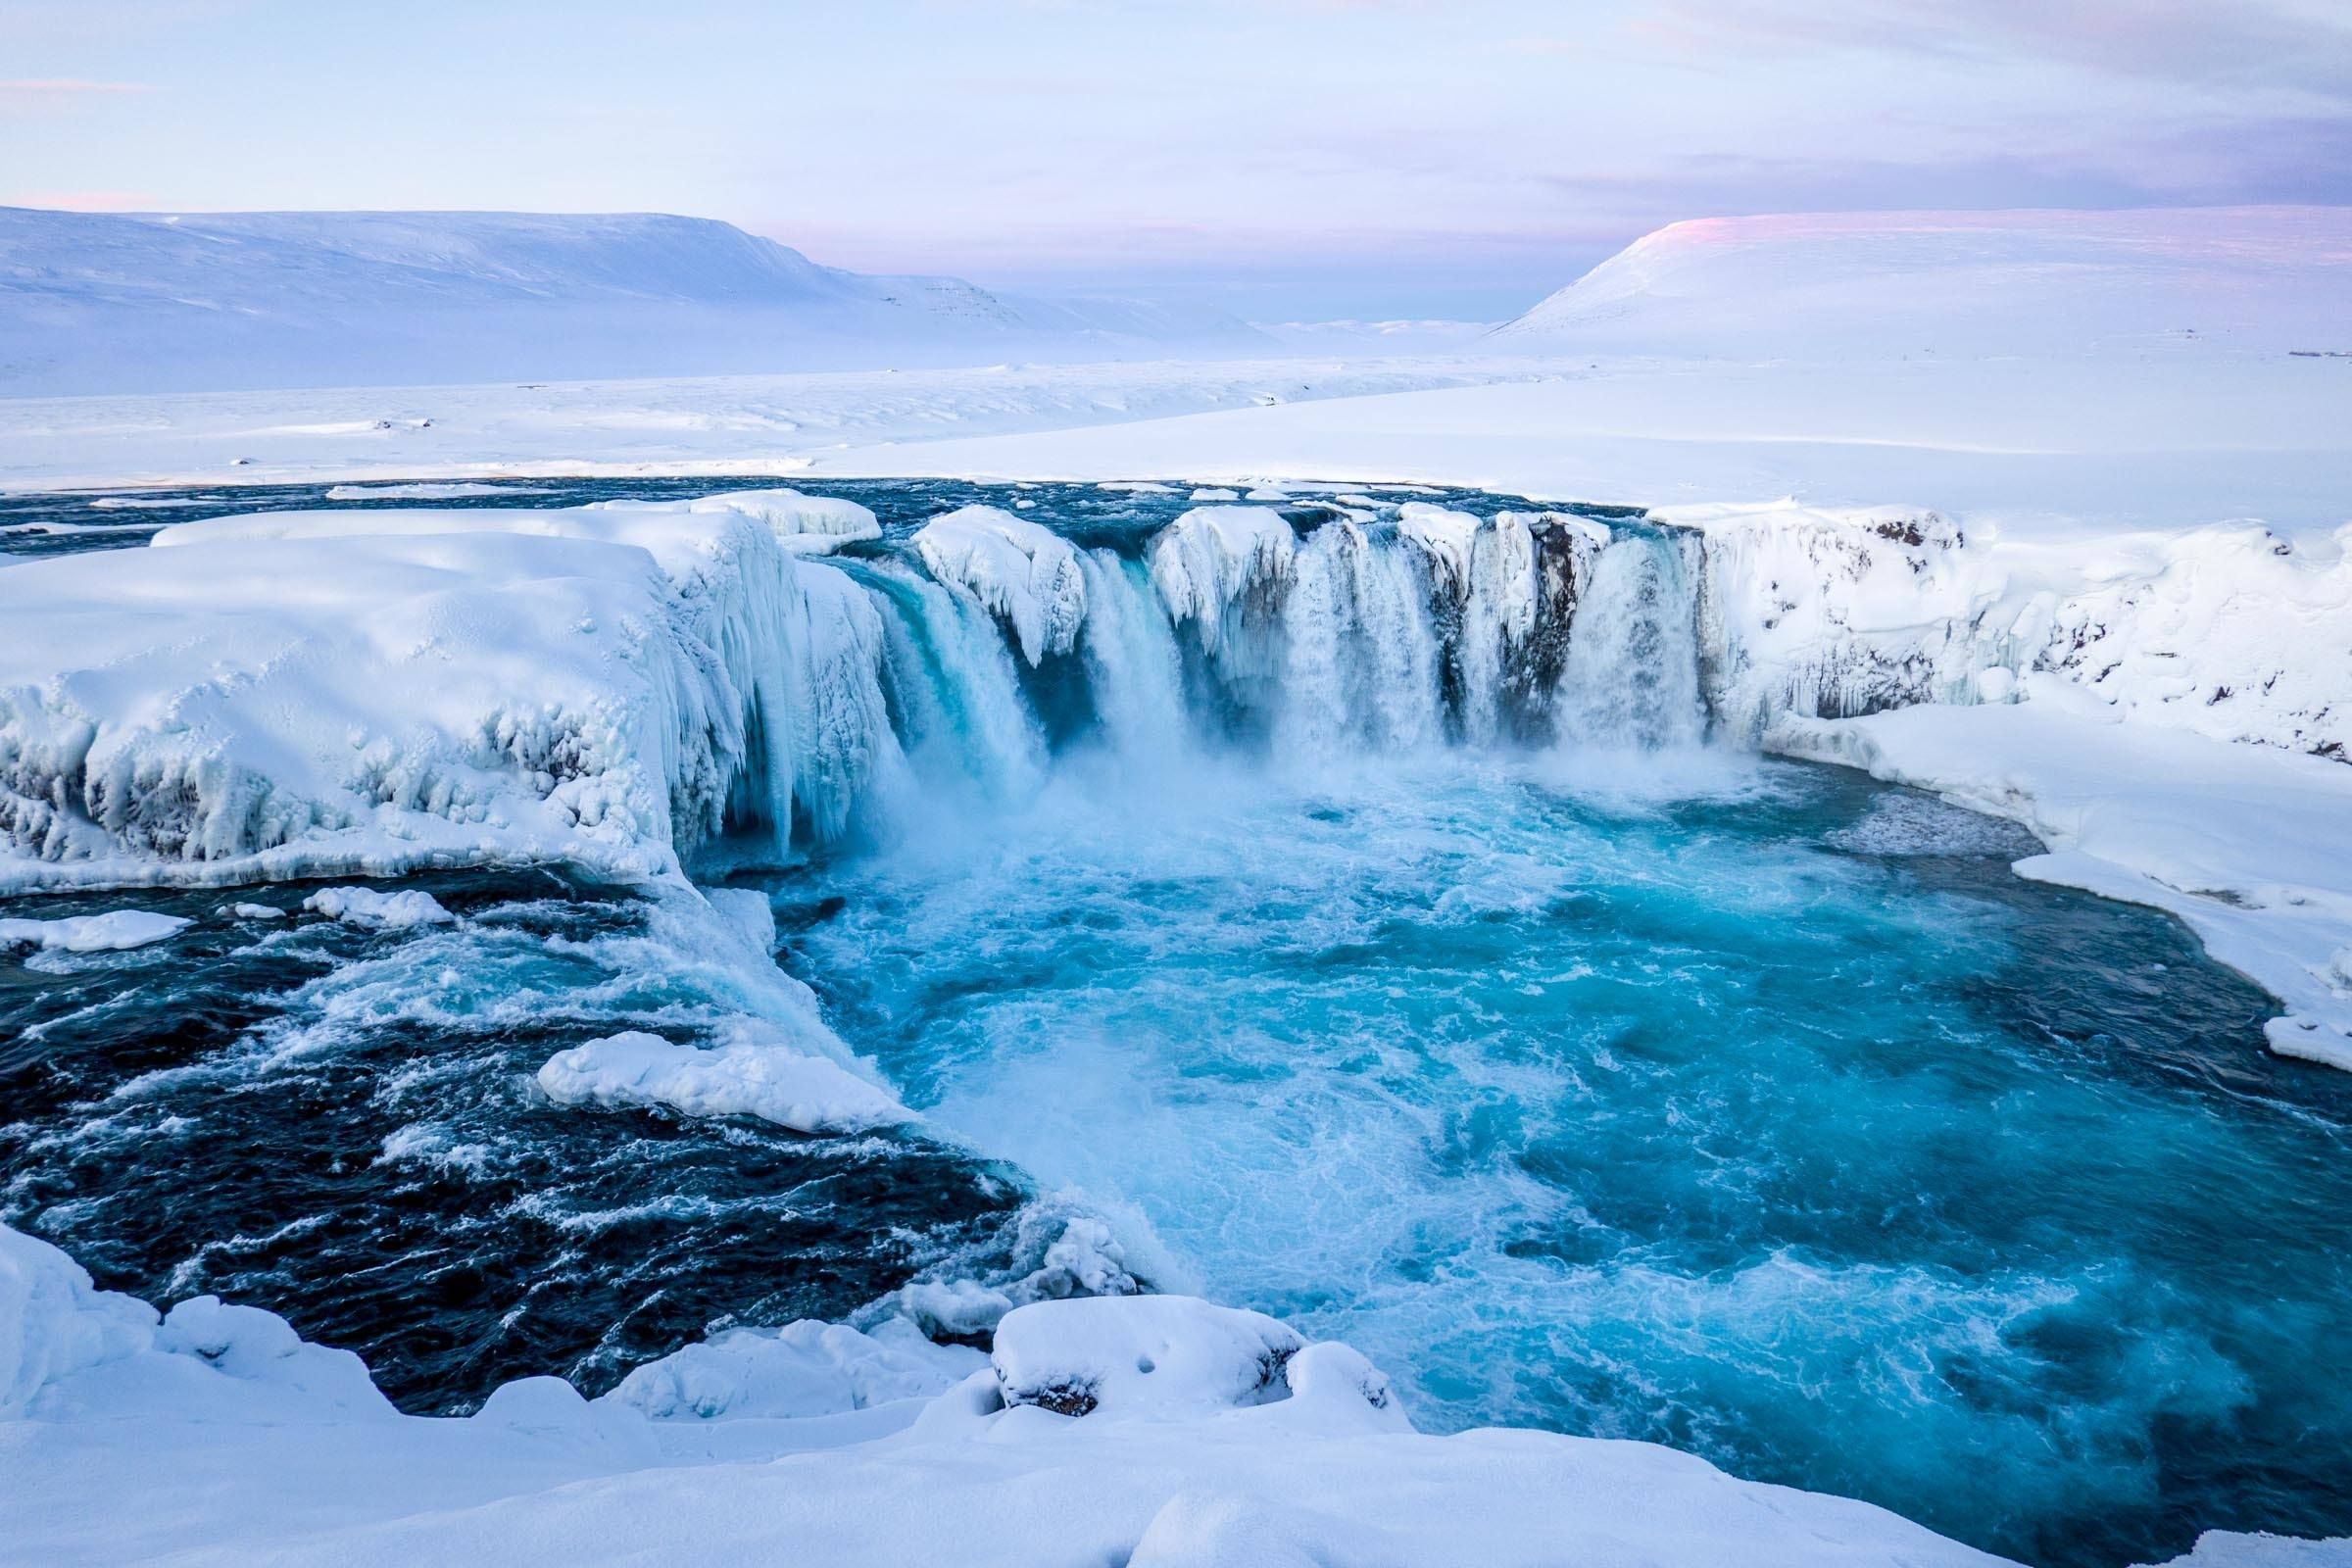 Iceland waterfall covered in ice and snow